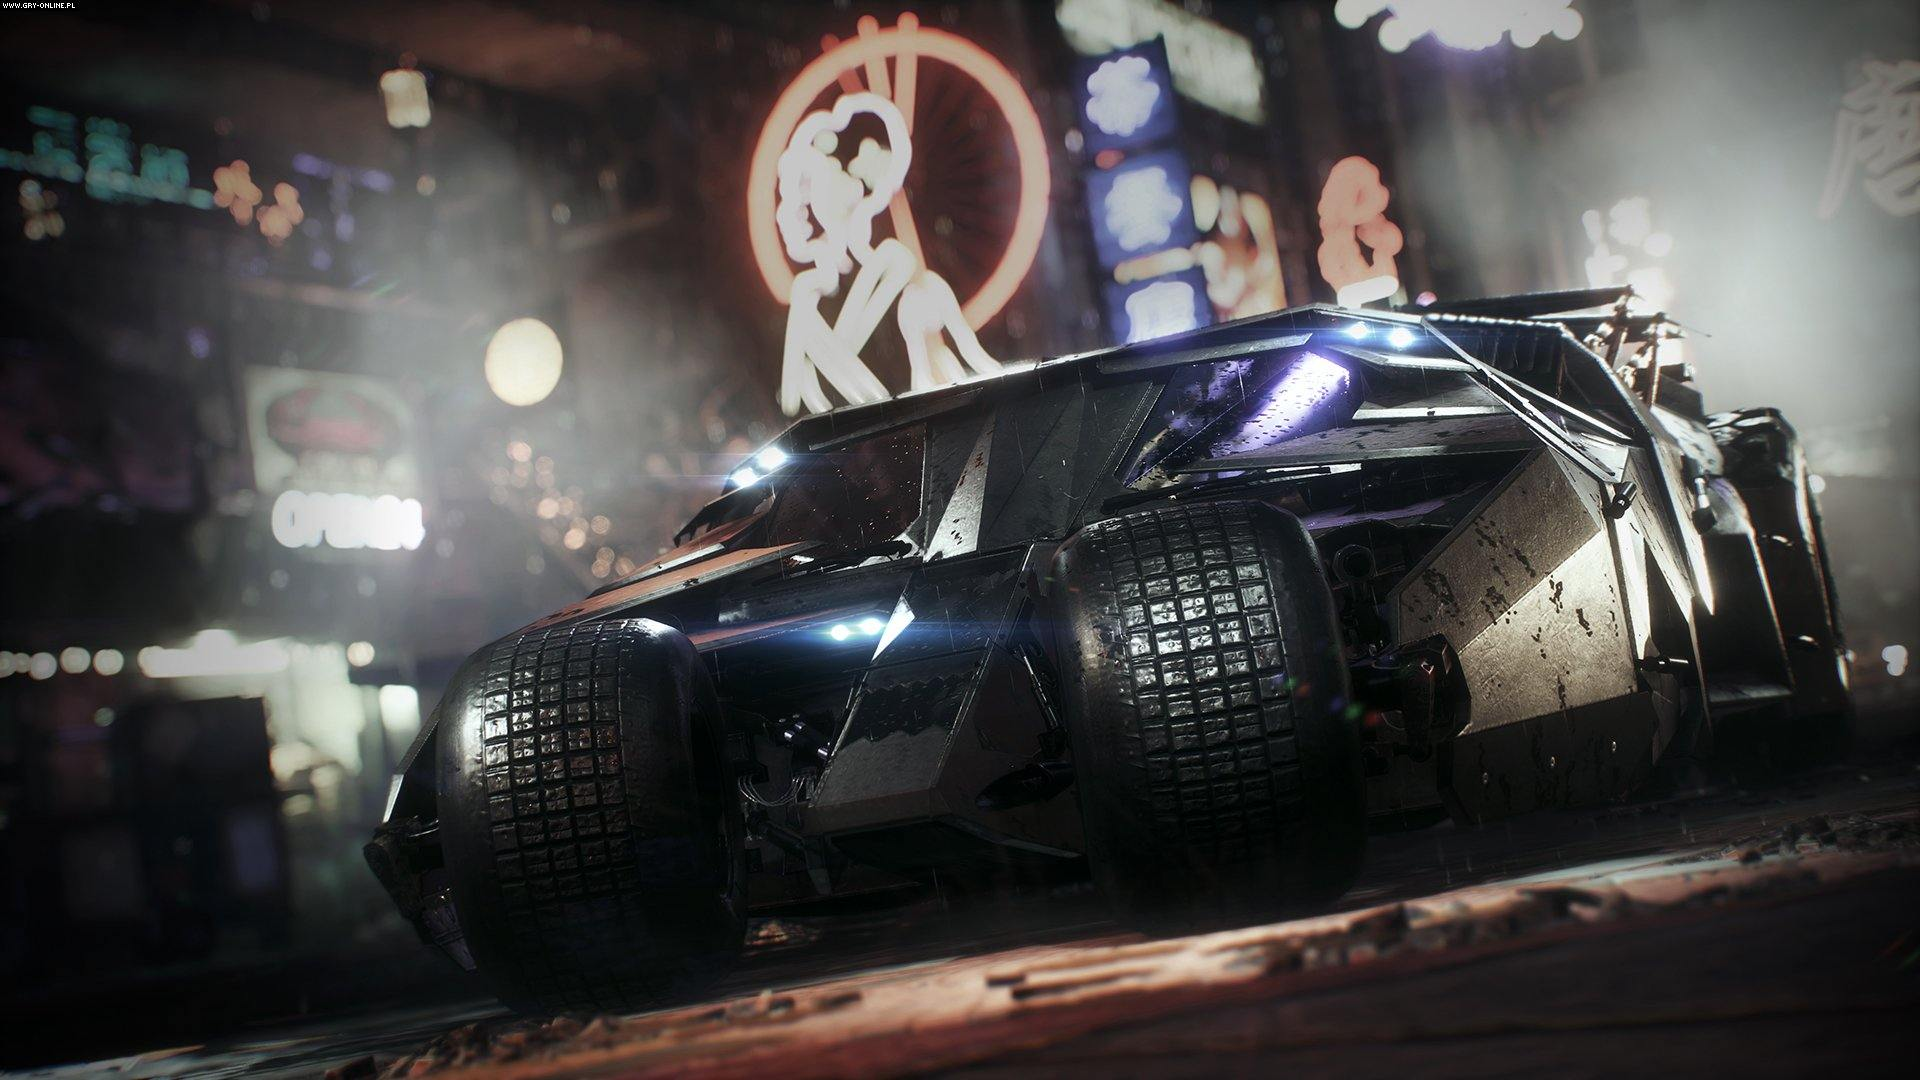 Batman Arkham Knight image #4